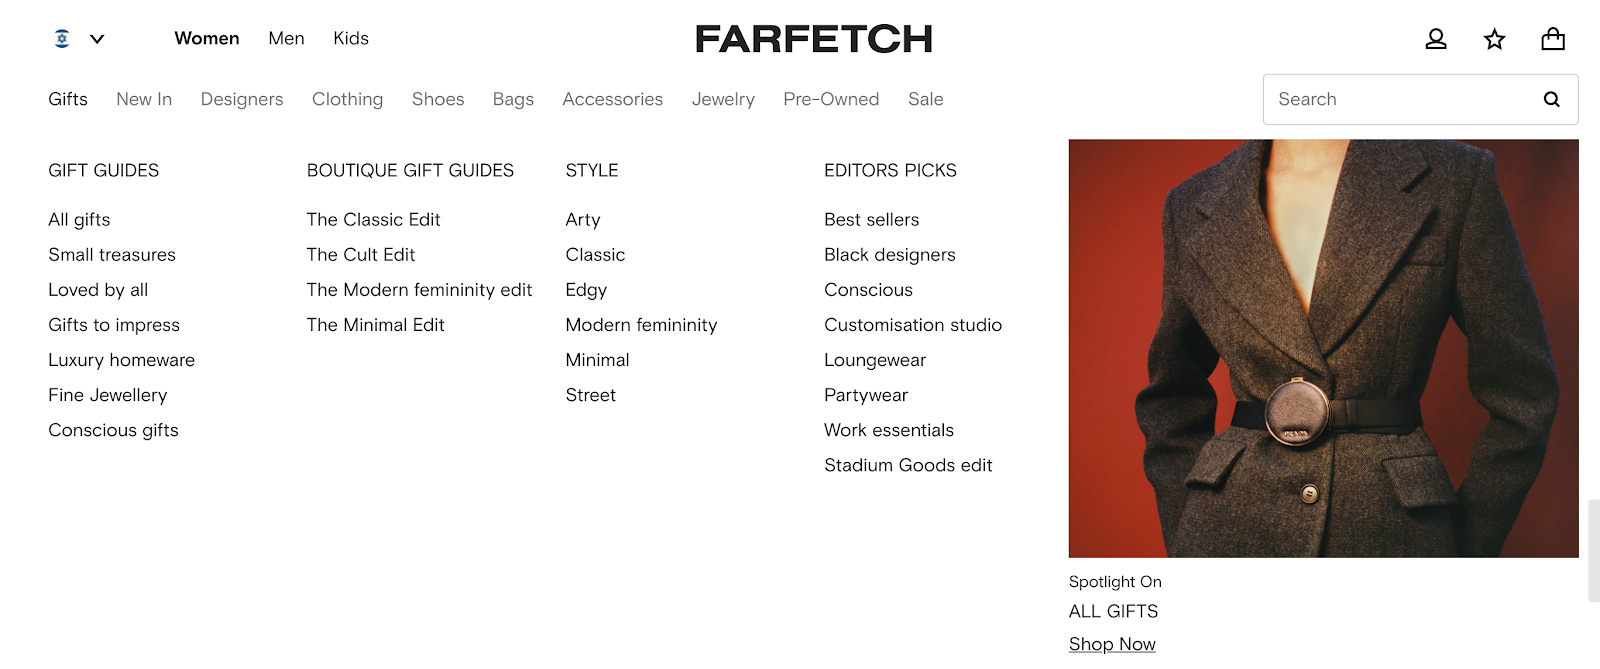 Farfetch's gift guides